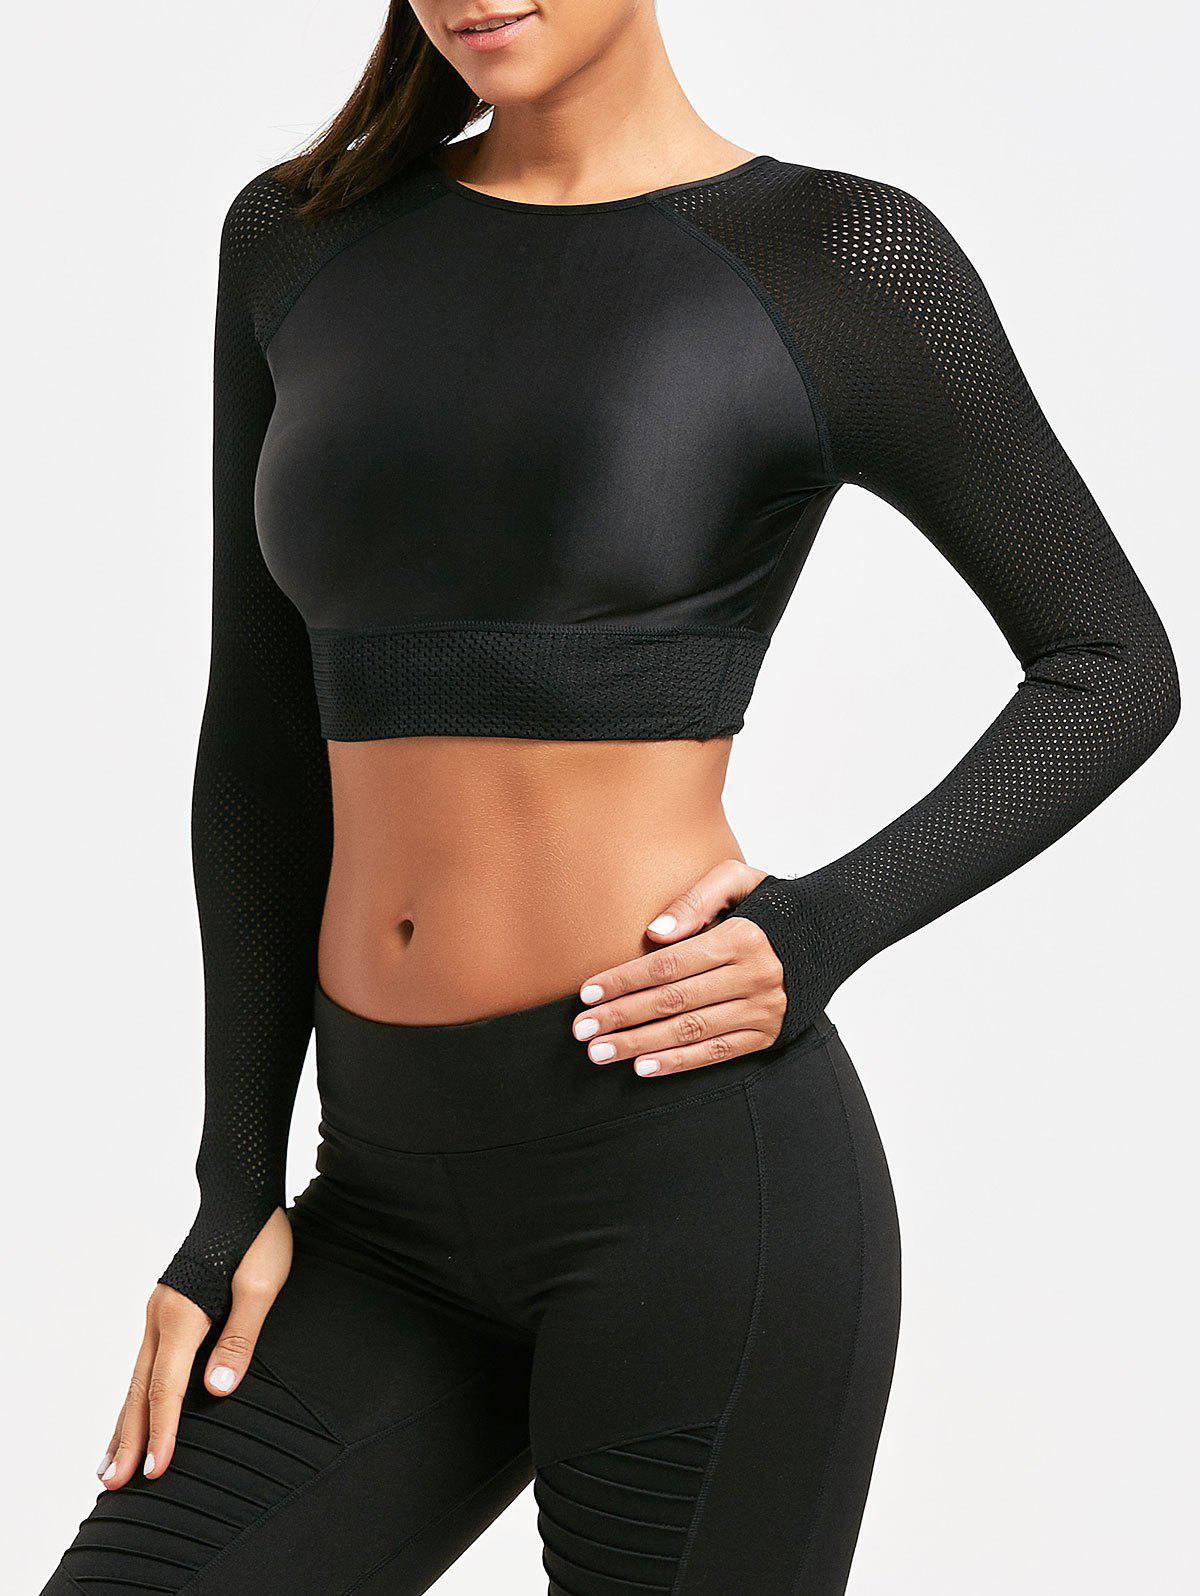 Mesh Insert Long Sleeve Crop Tee shirt - BLACK L